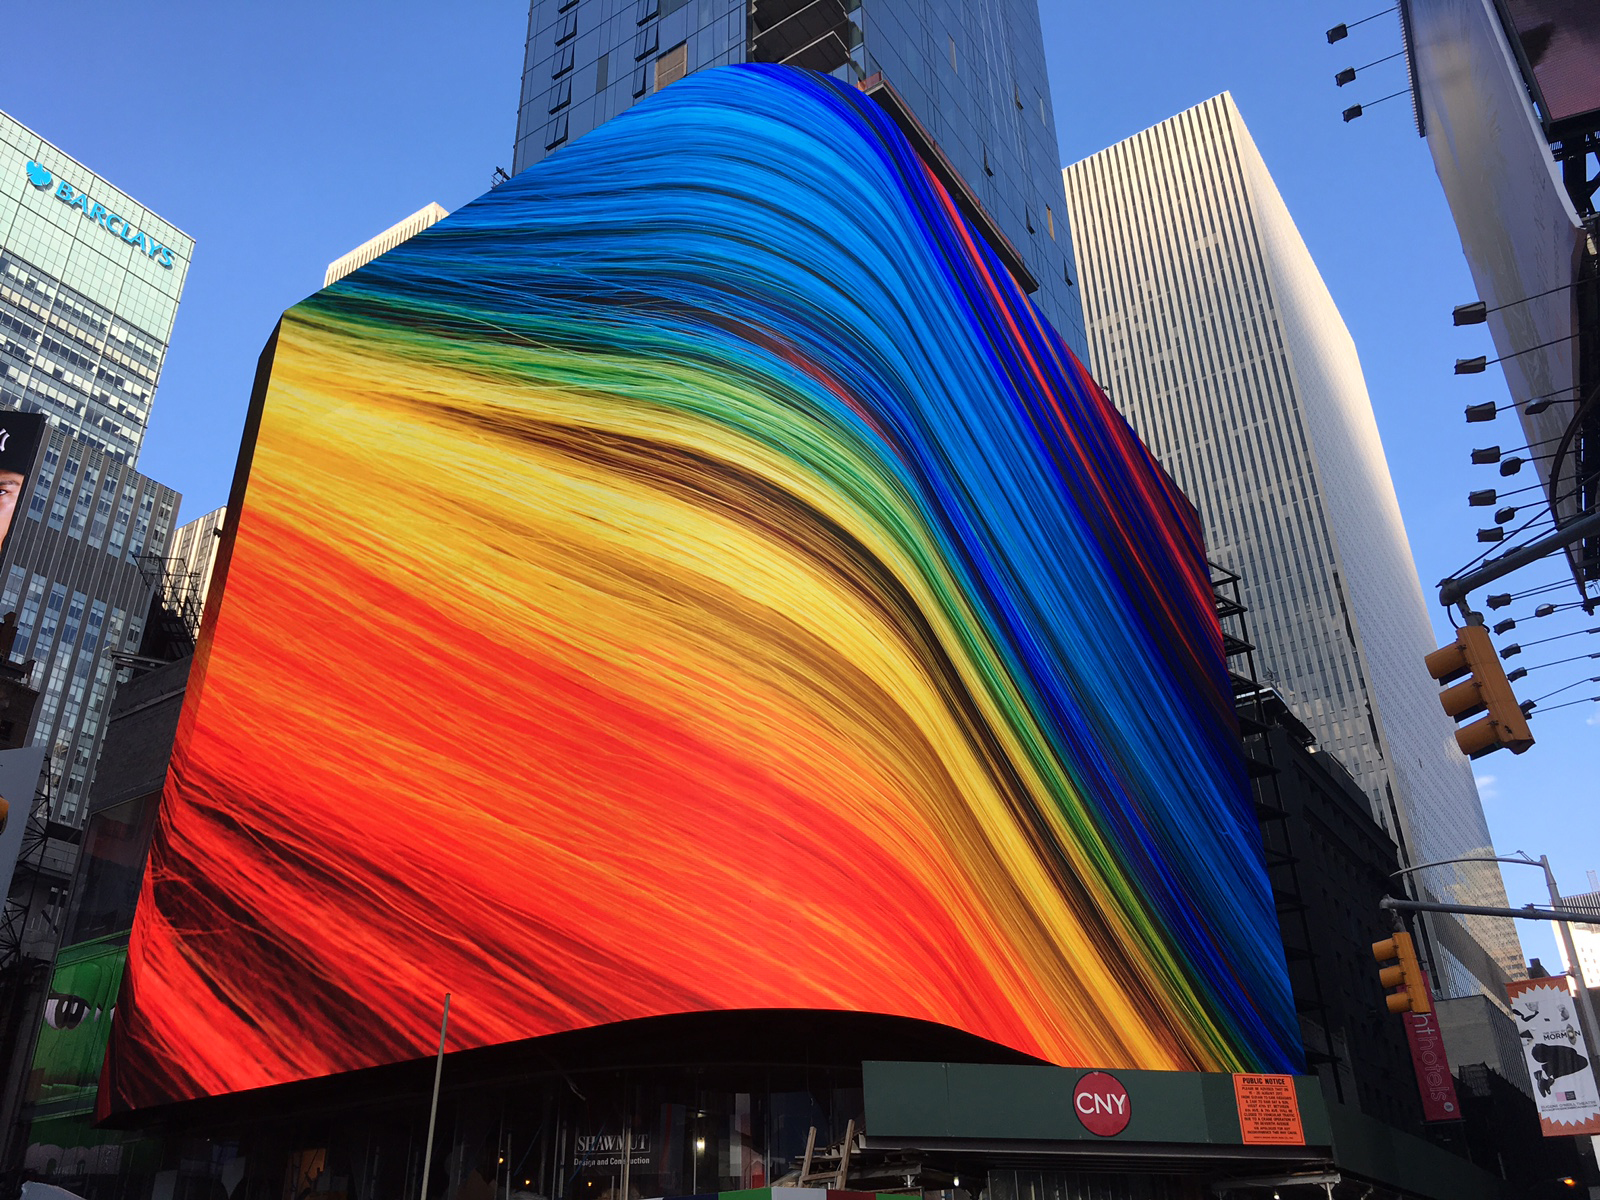 20 Times Square, featuring the most high resolution display ever seen at the iconic location.